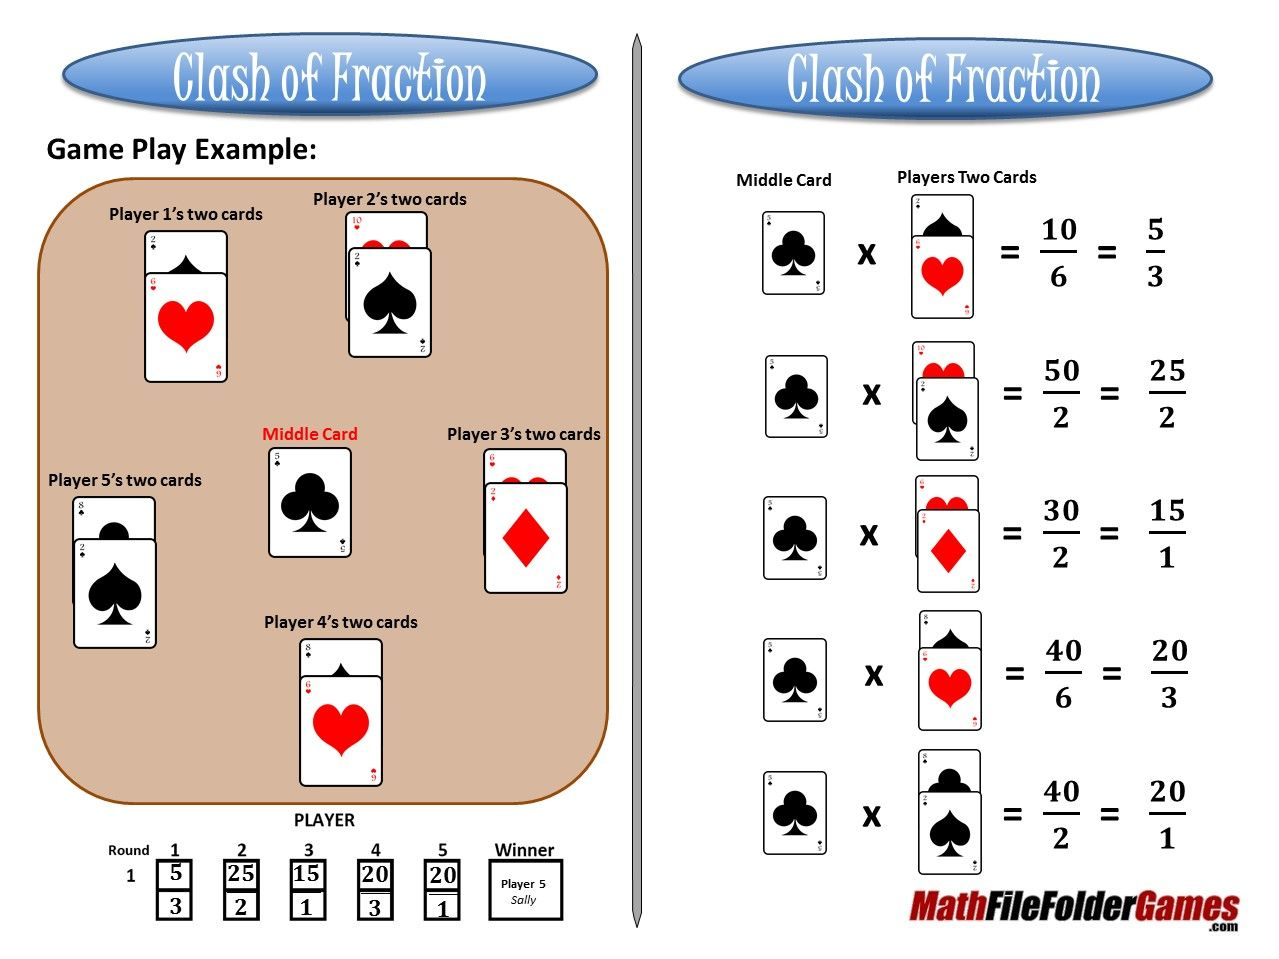 Clash Of Fraction Multiplying Fractions Game With Images